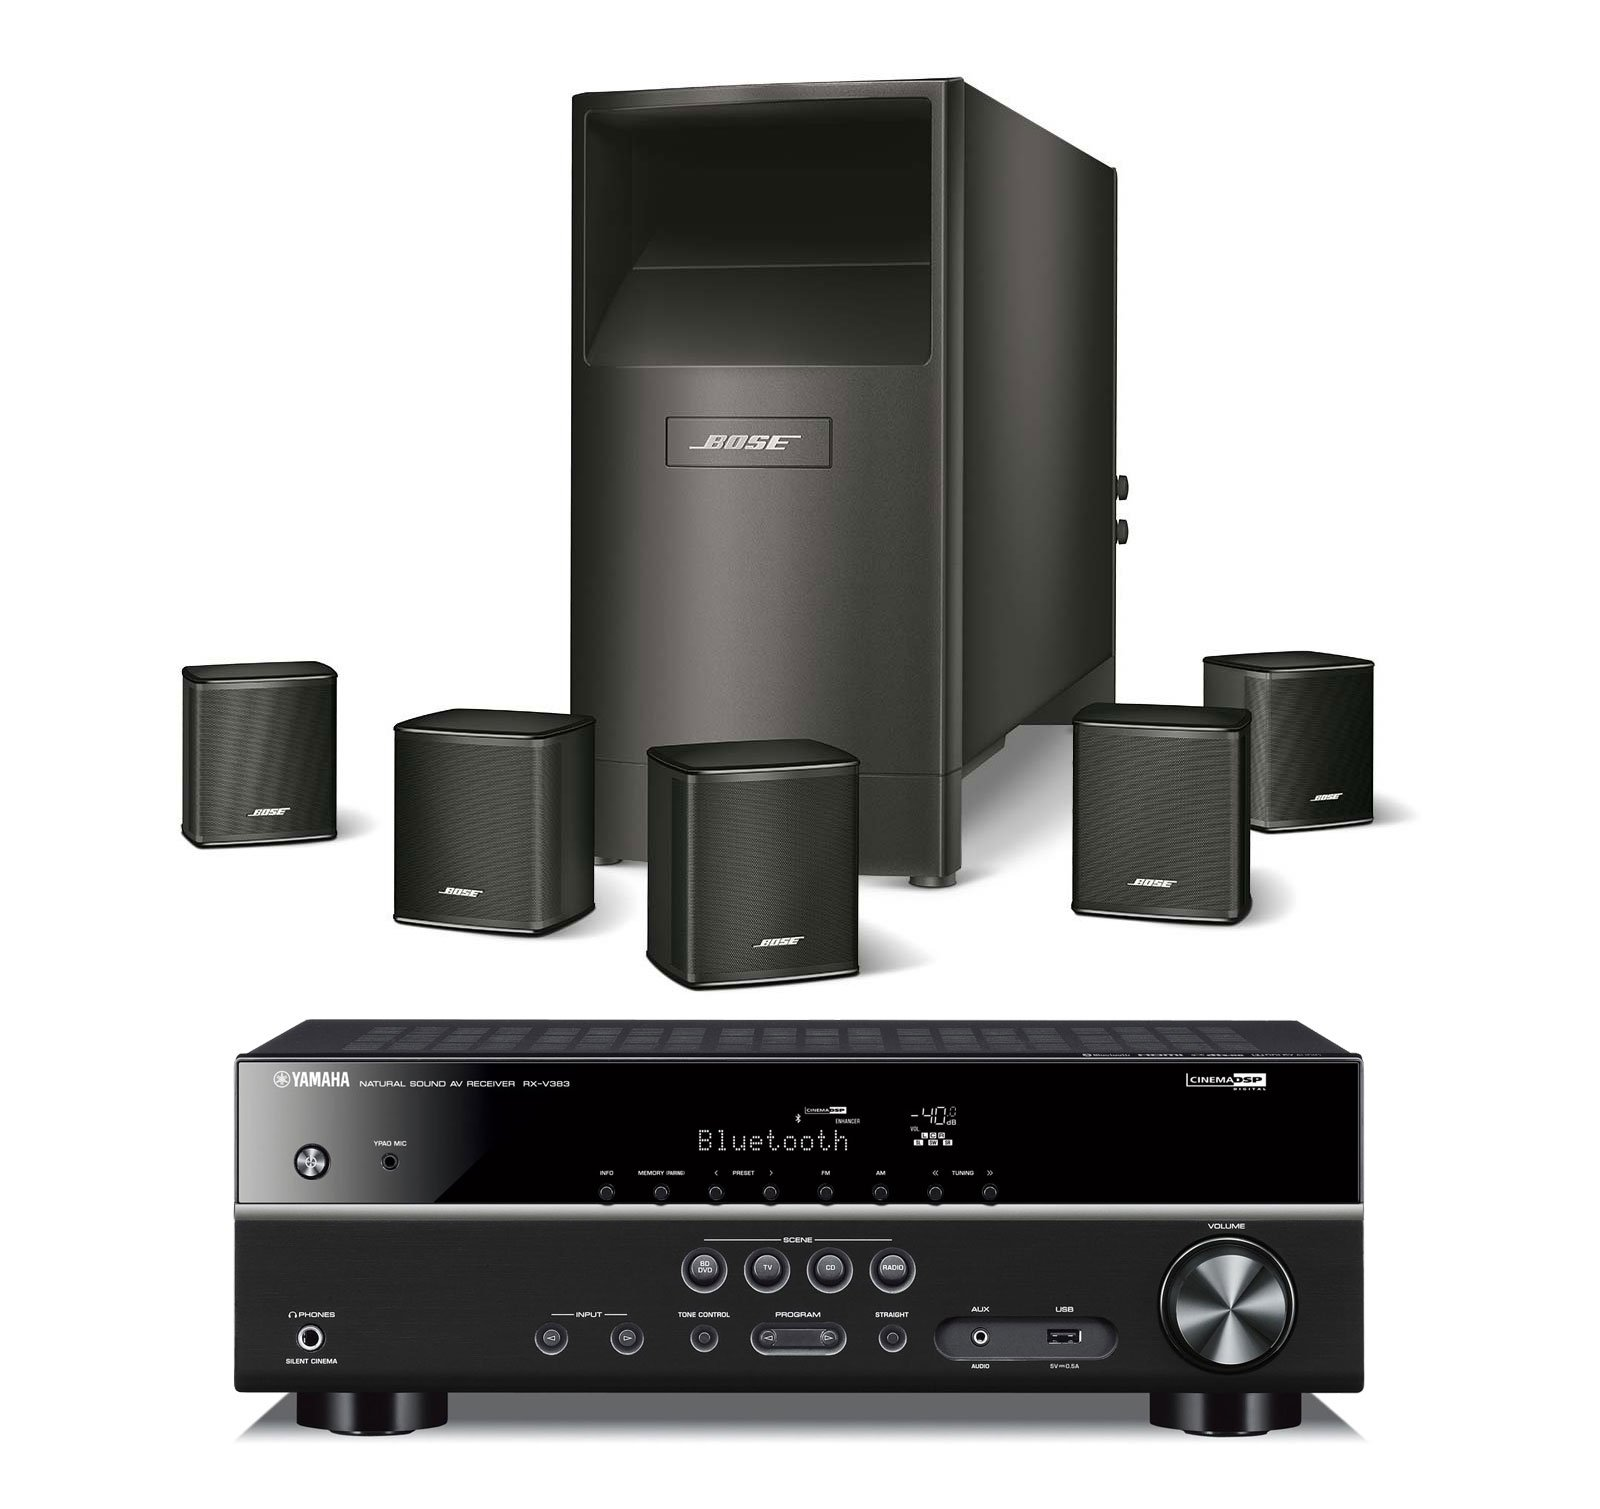 Bose Acoustimass 6 Series V Wired Home Theater Speaker System, Black, with Yamaha RXV383BL AV Bluetooth Receiver